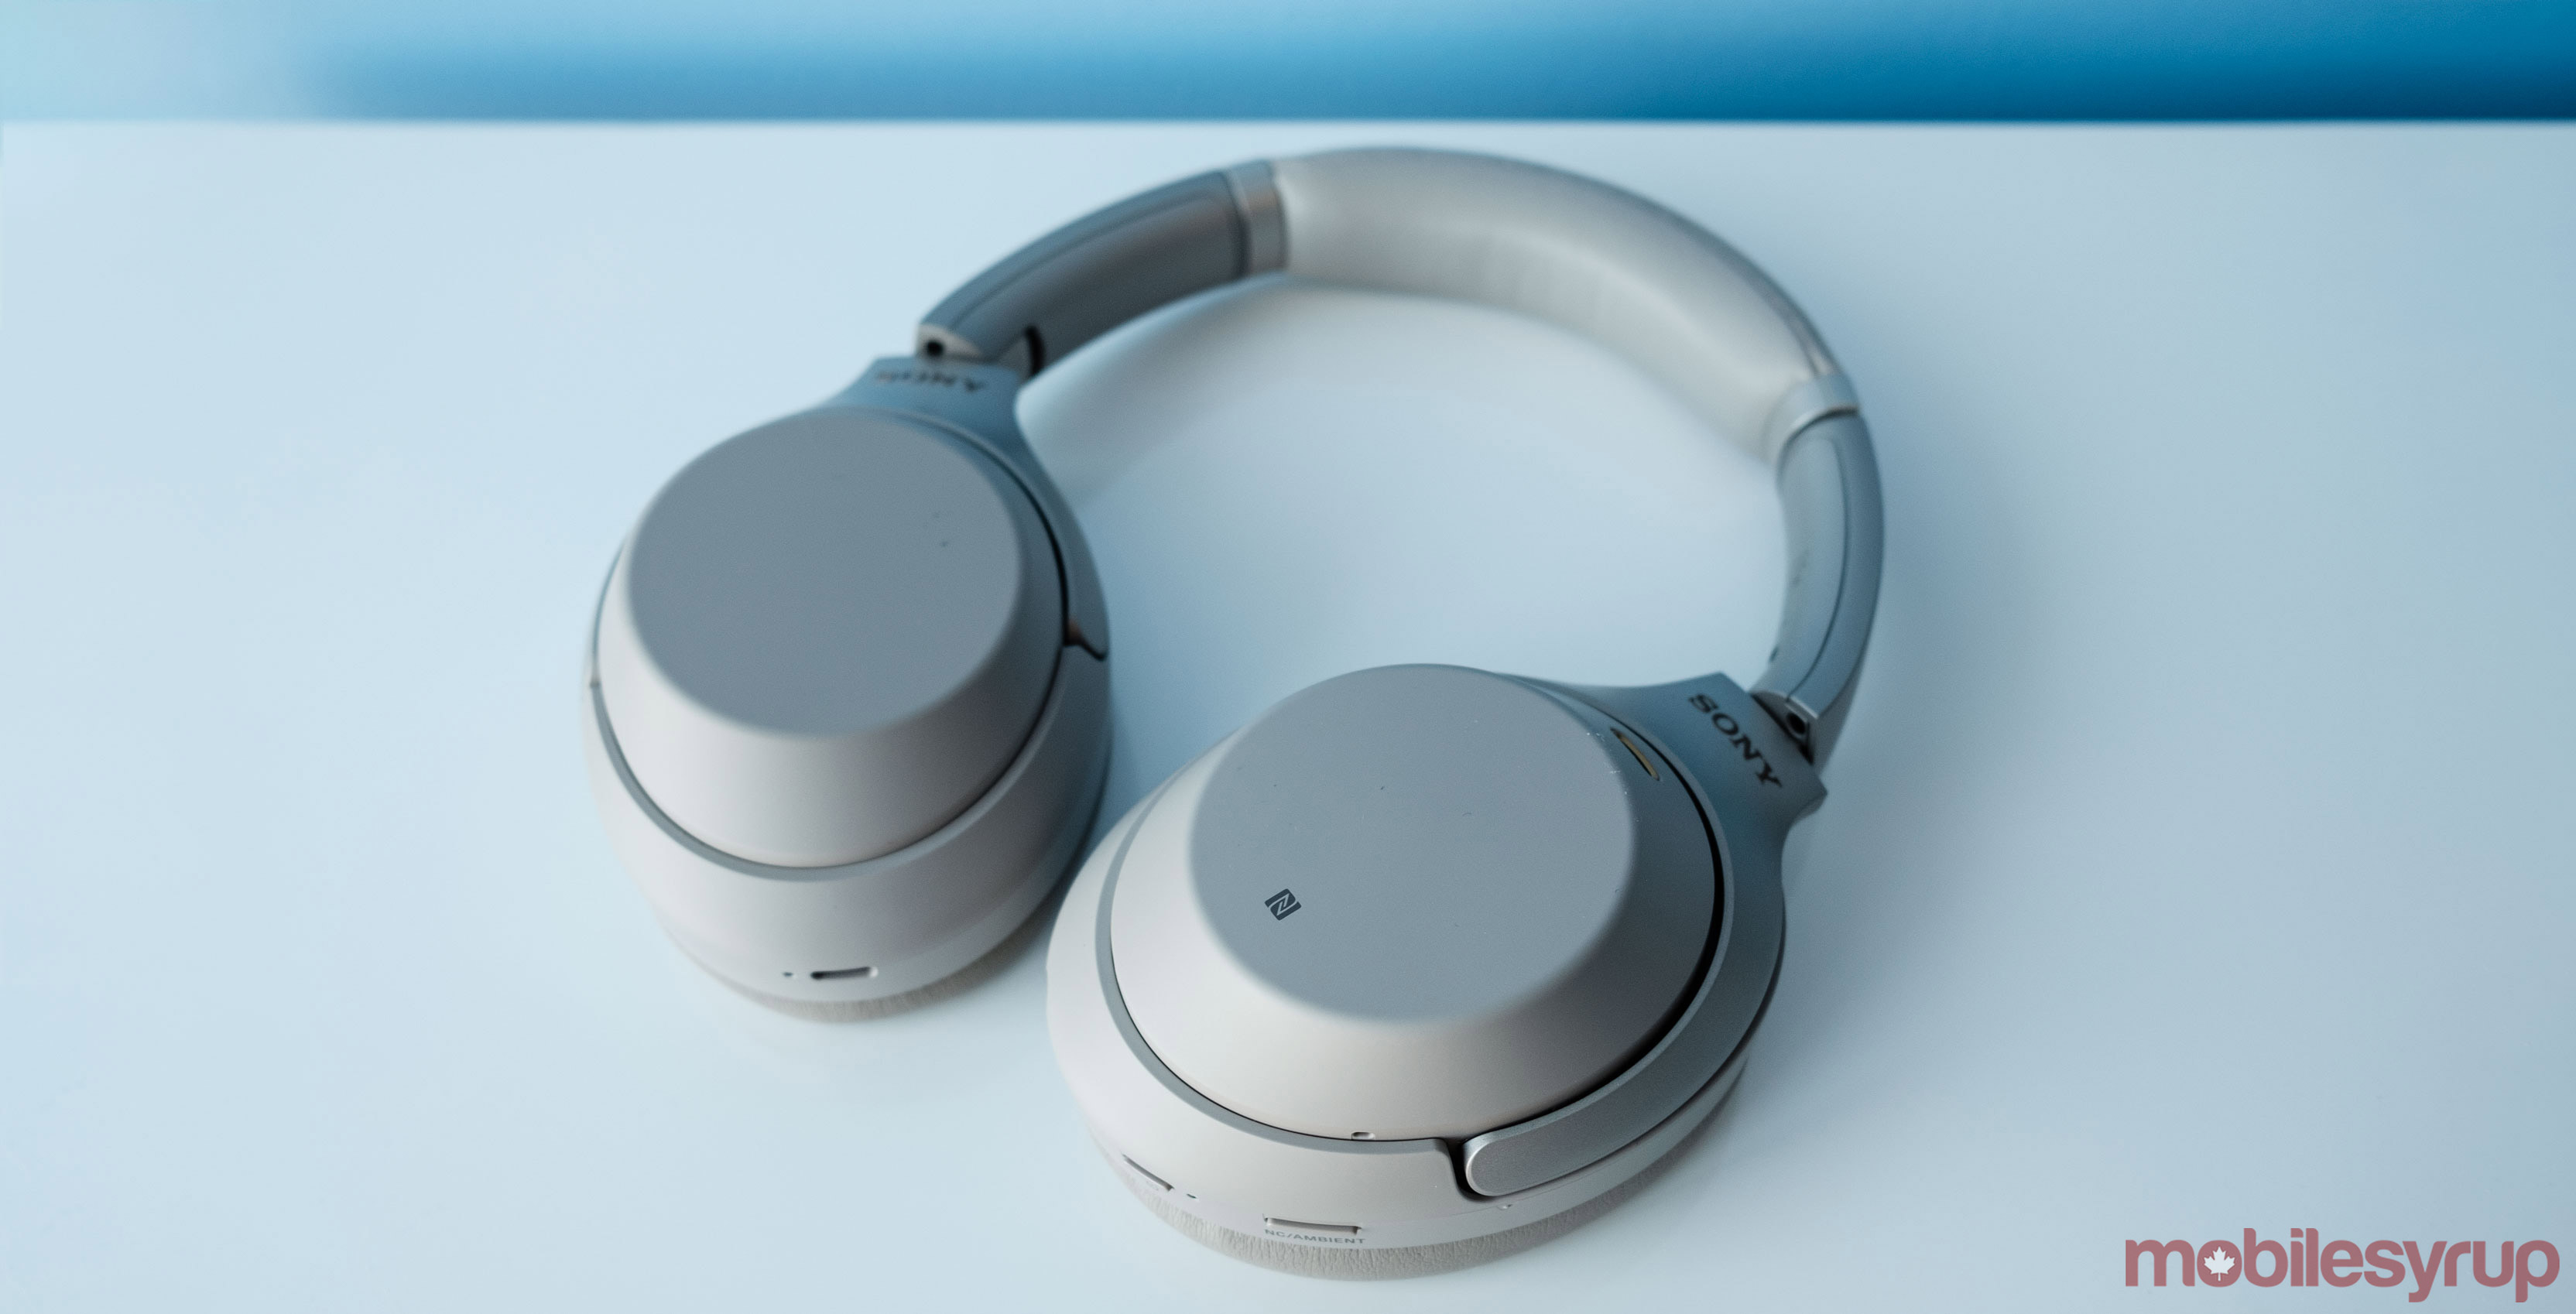 3de79eb1849 Two of the best pairs of noise-cancelling headphones, the Sony WH1000XM3s  and Bose QC35iis, are currently $50 off at Amazon, making them both $400  CAD.